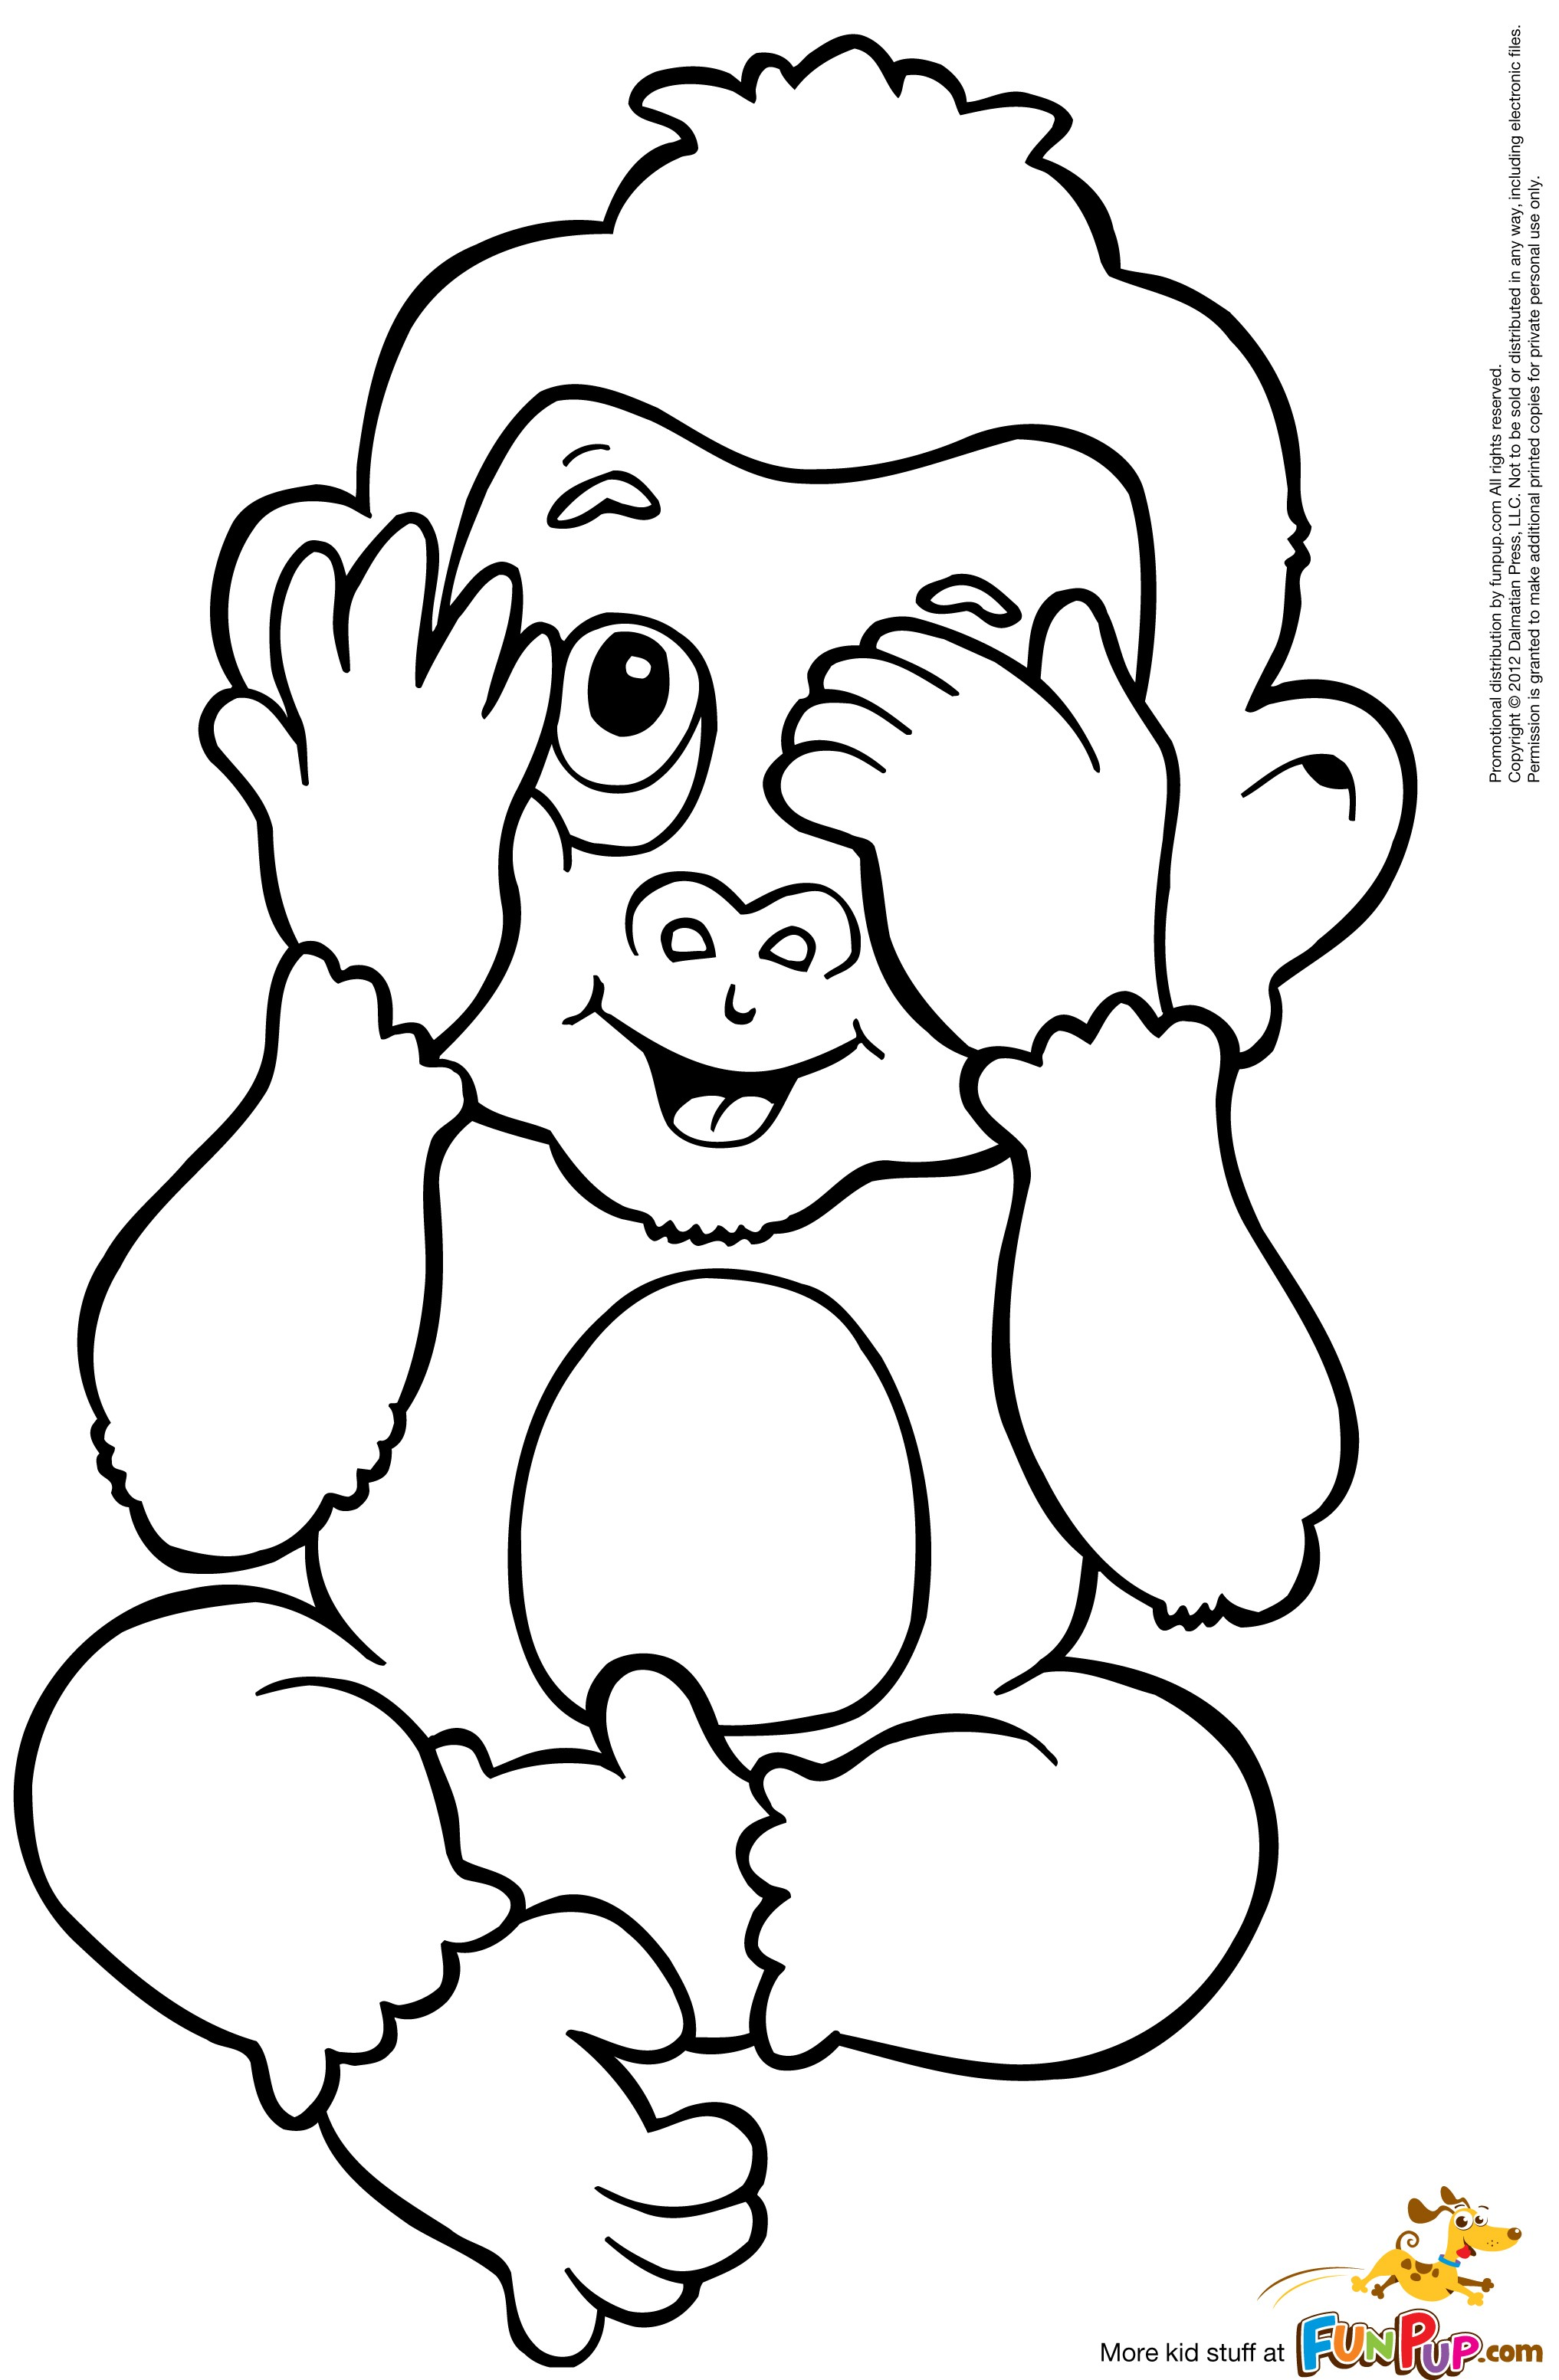 coloring monkey printable coloring pages for kids coloring printable monkey